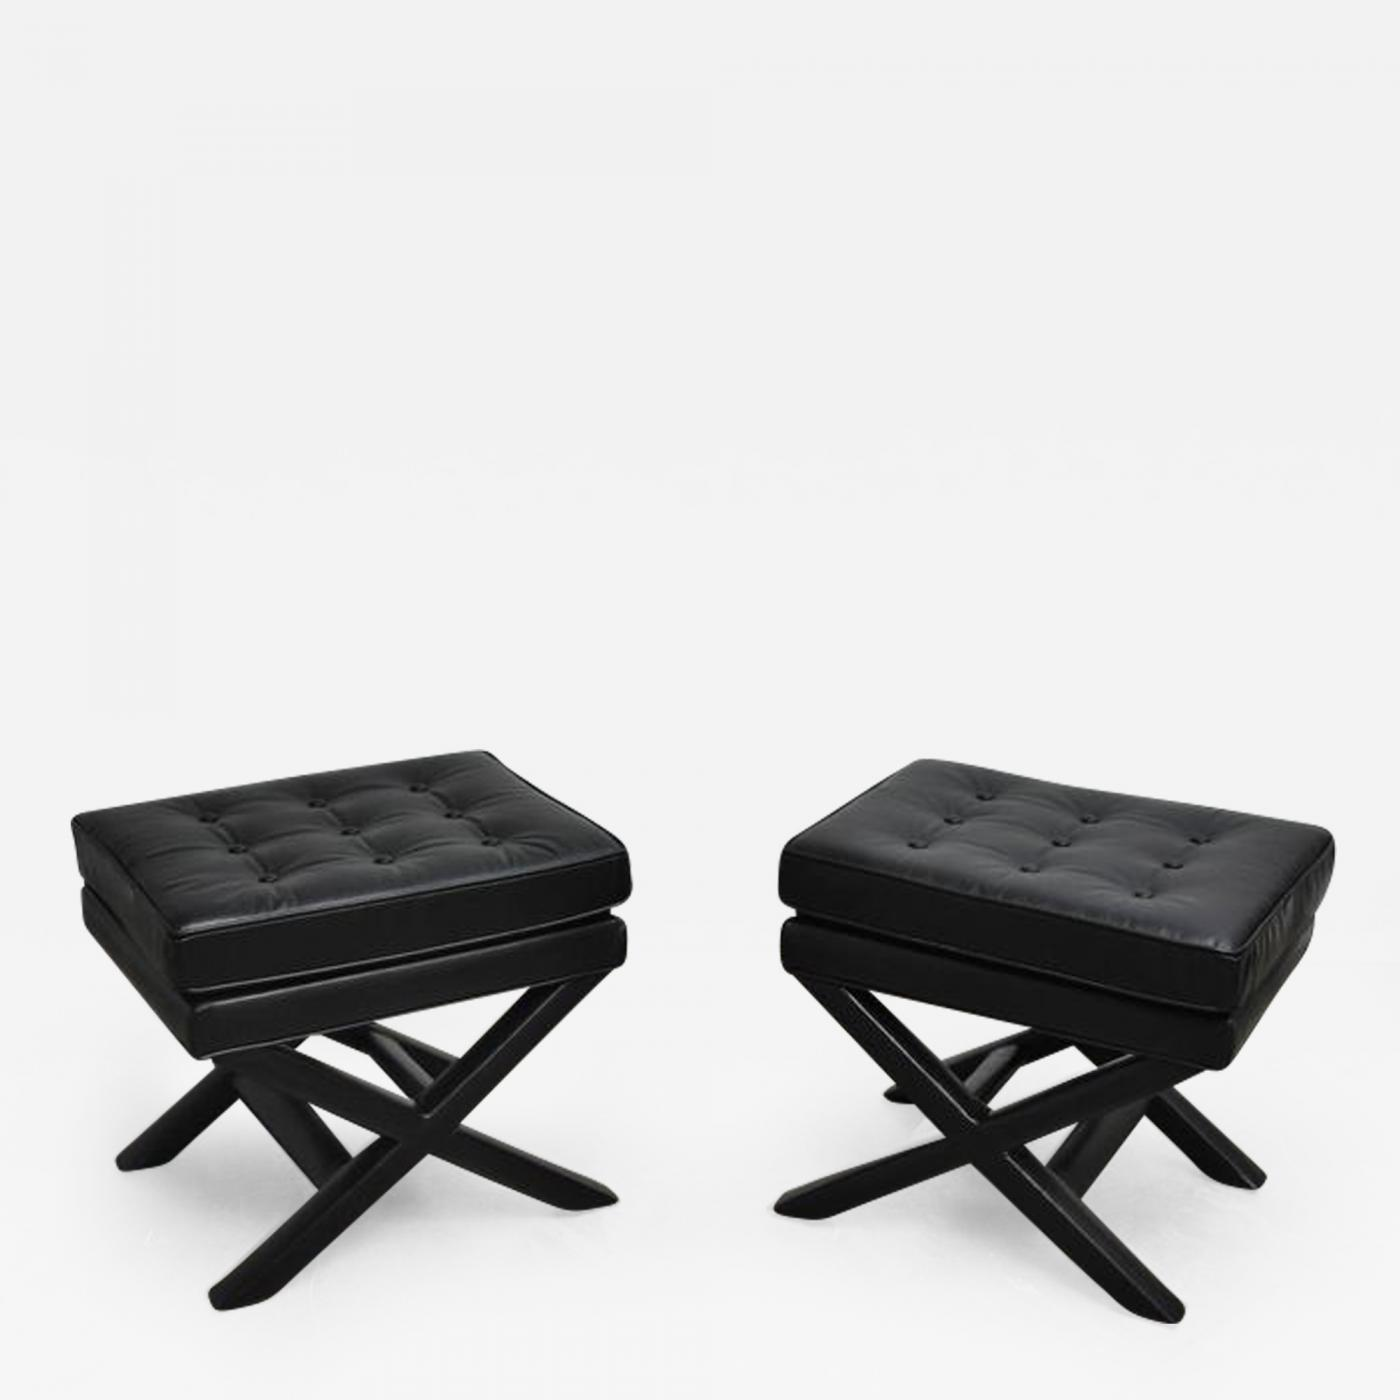 Sensational Black Leather X Base Stools Beatyapartments Chair Design Images Beatyapartmentscom